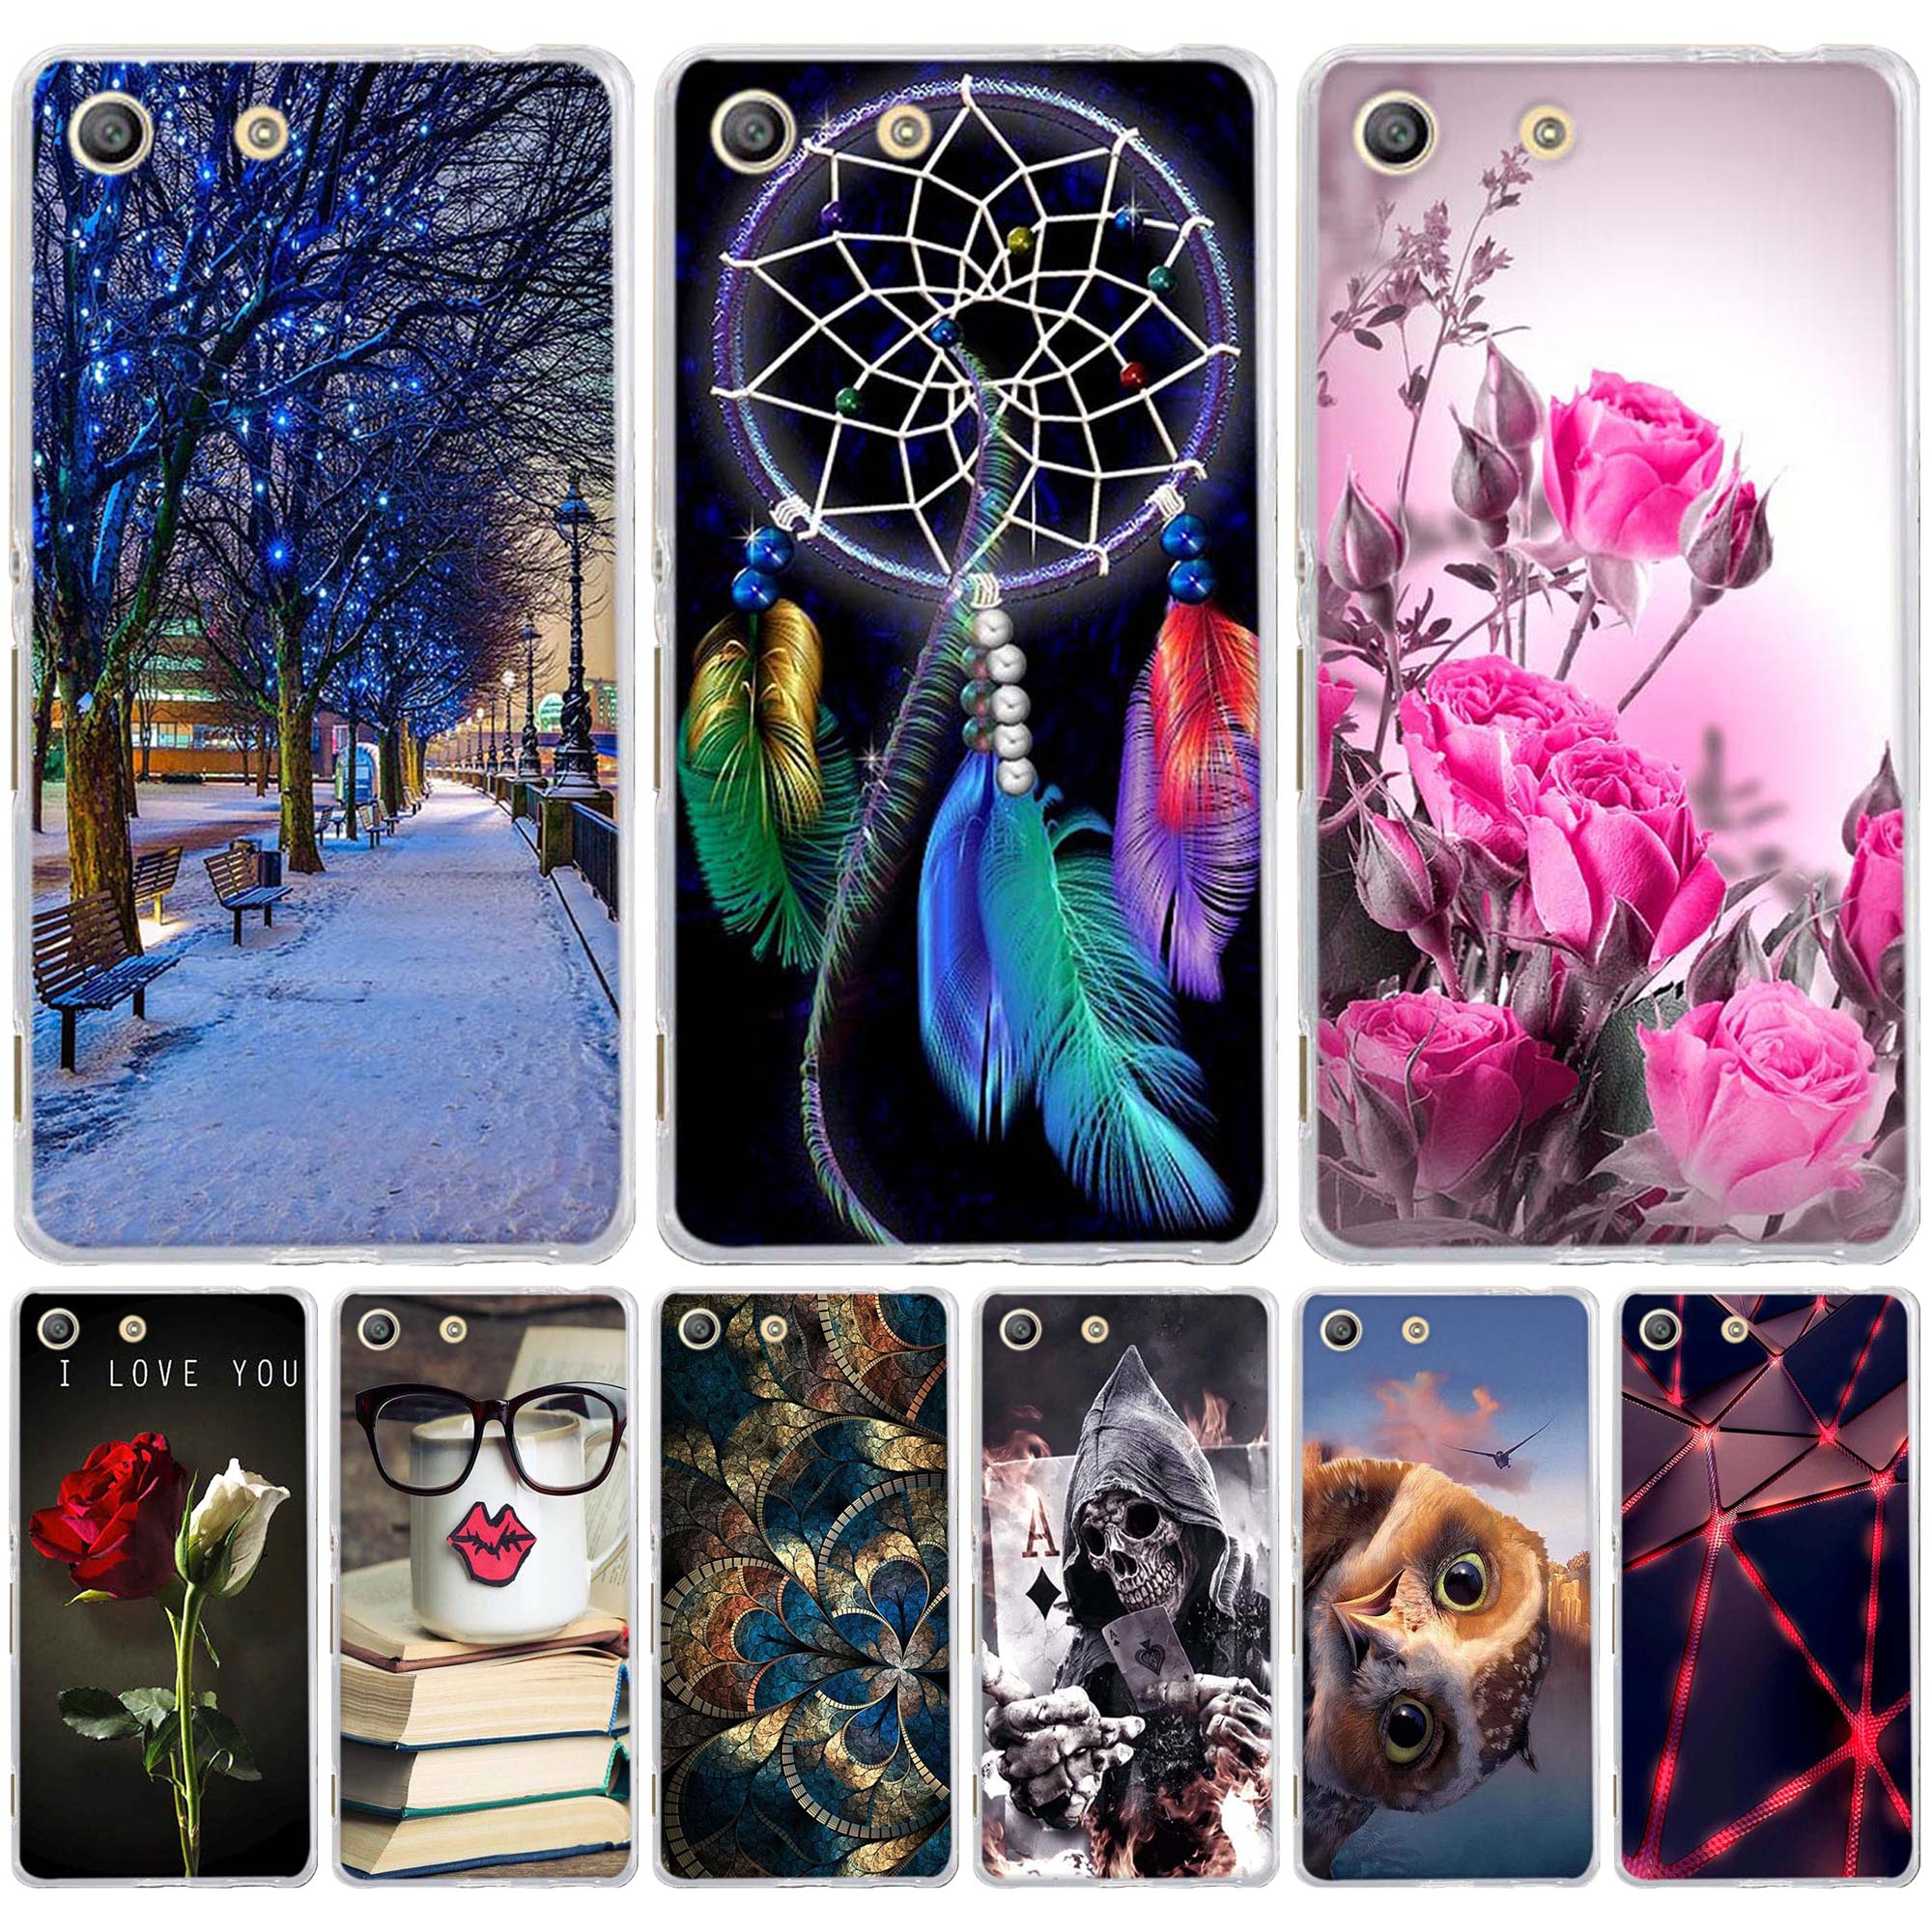 Case for Sony Xperia M5 E5603 E5606 E5653 Cover Soft Silicon Chic Patterned Painted Cover for Fundas Sony Xperia M5 Phone Cases